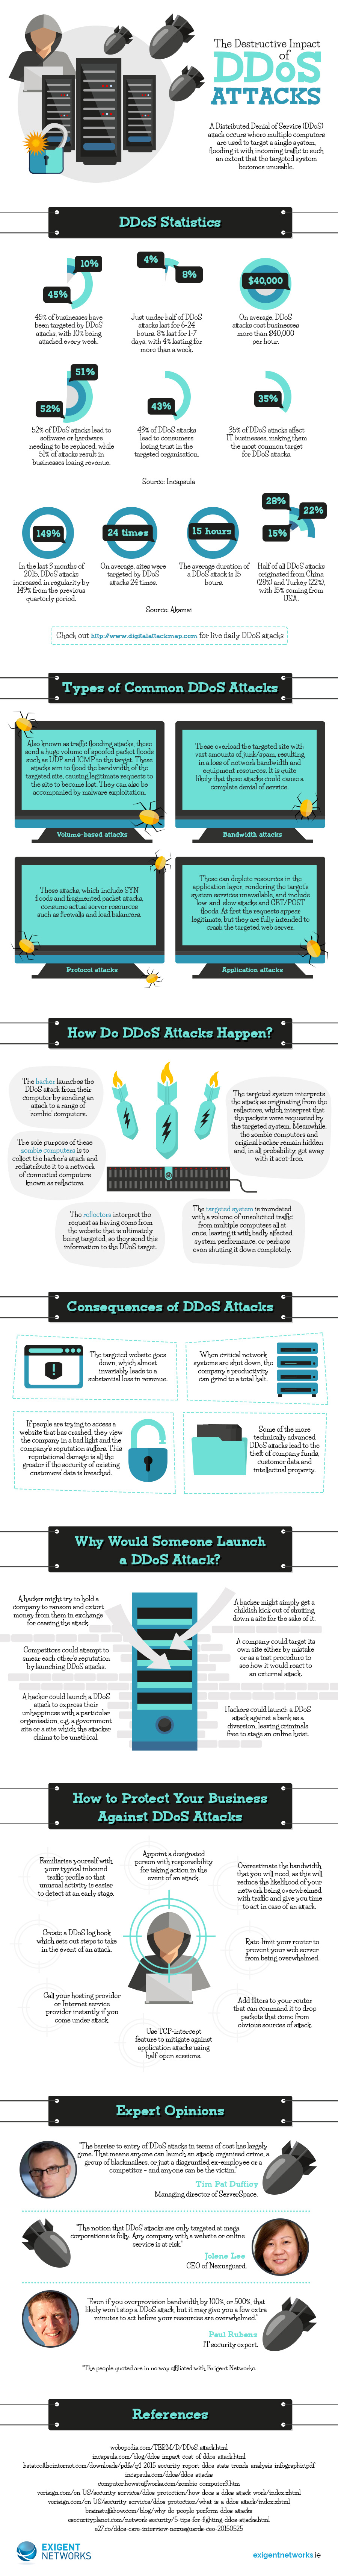 DDoD-Attacks-Infographic